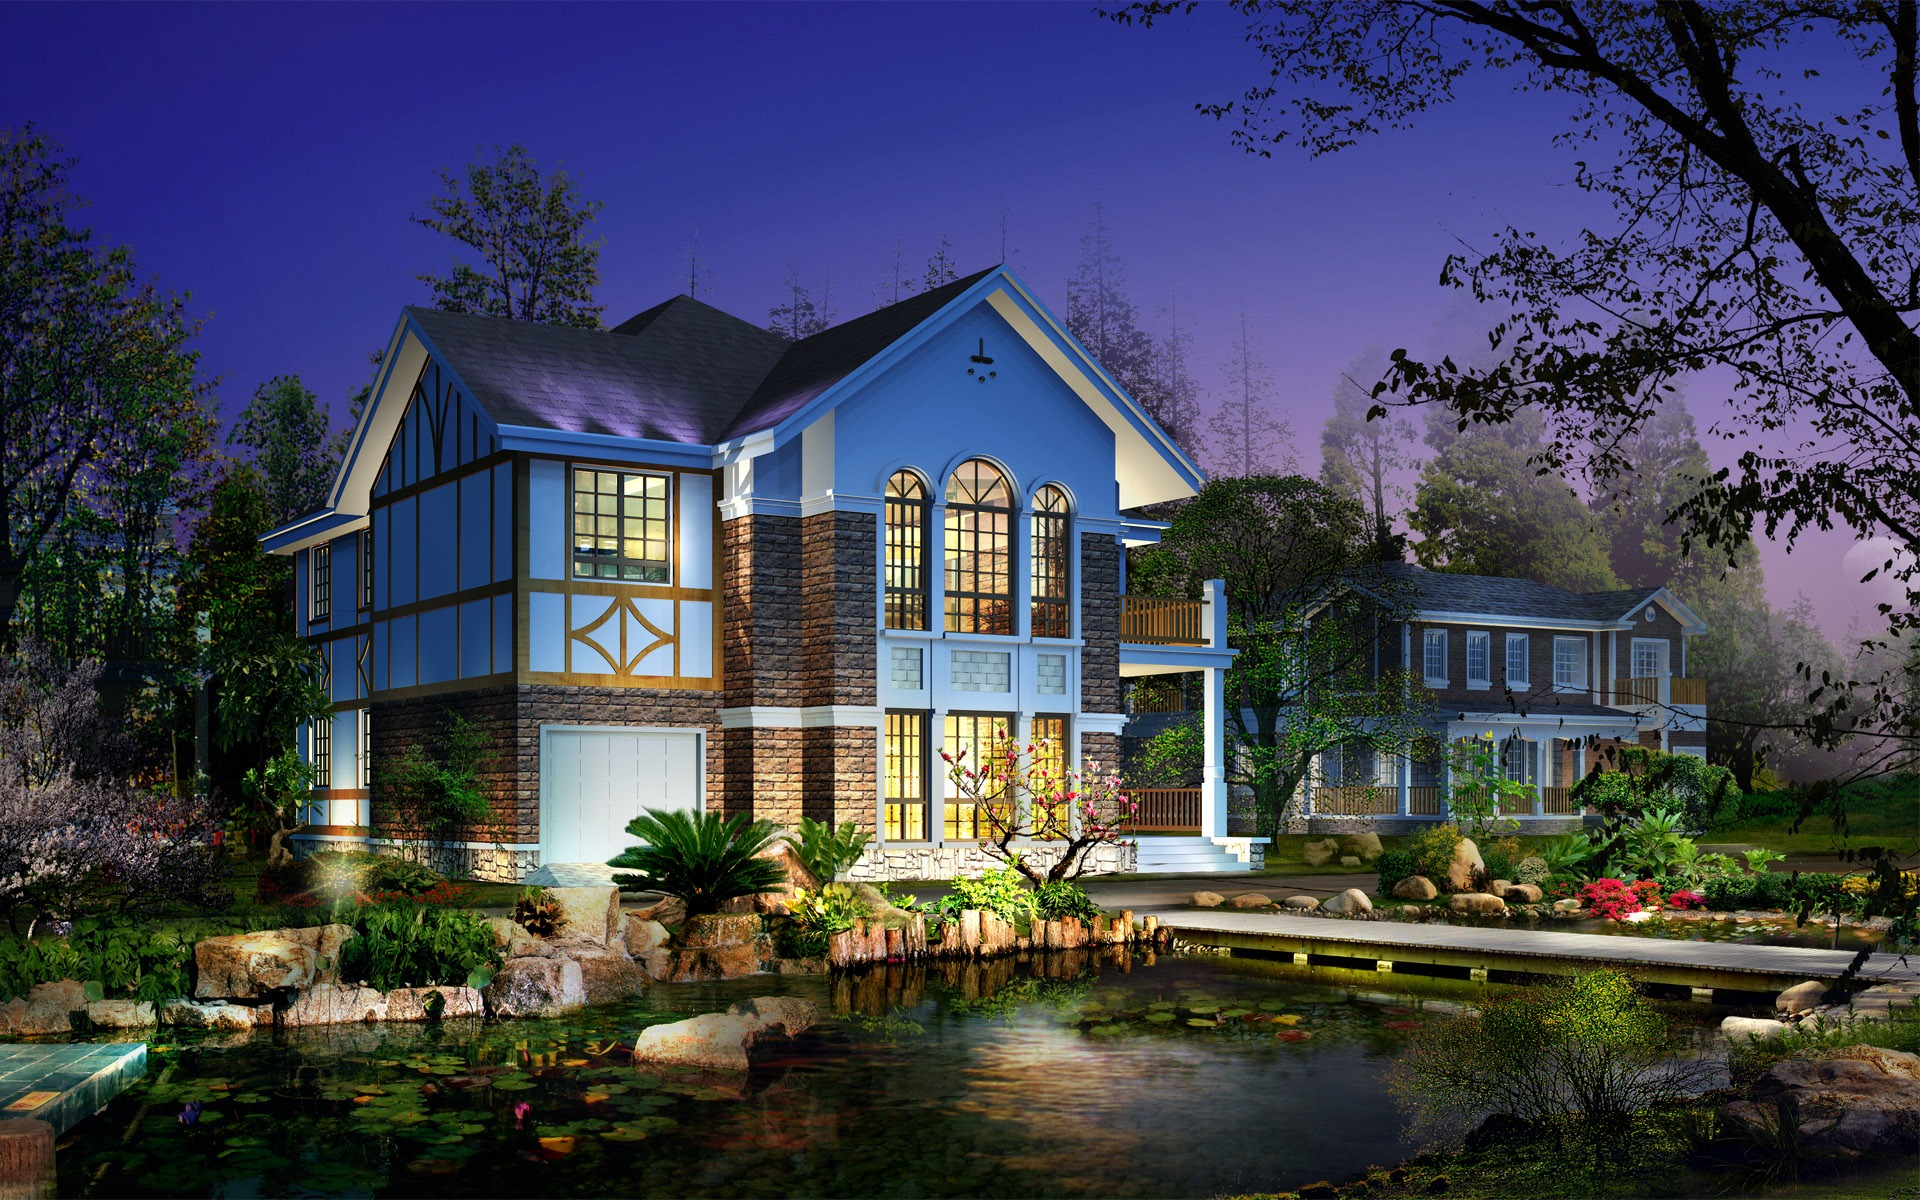 Architecture Widescreen House Other Files 927719 Wallpaper wallpaper download